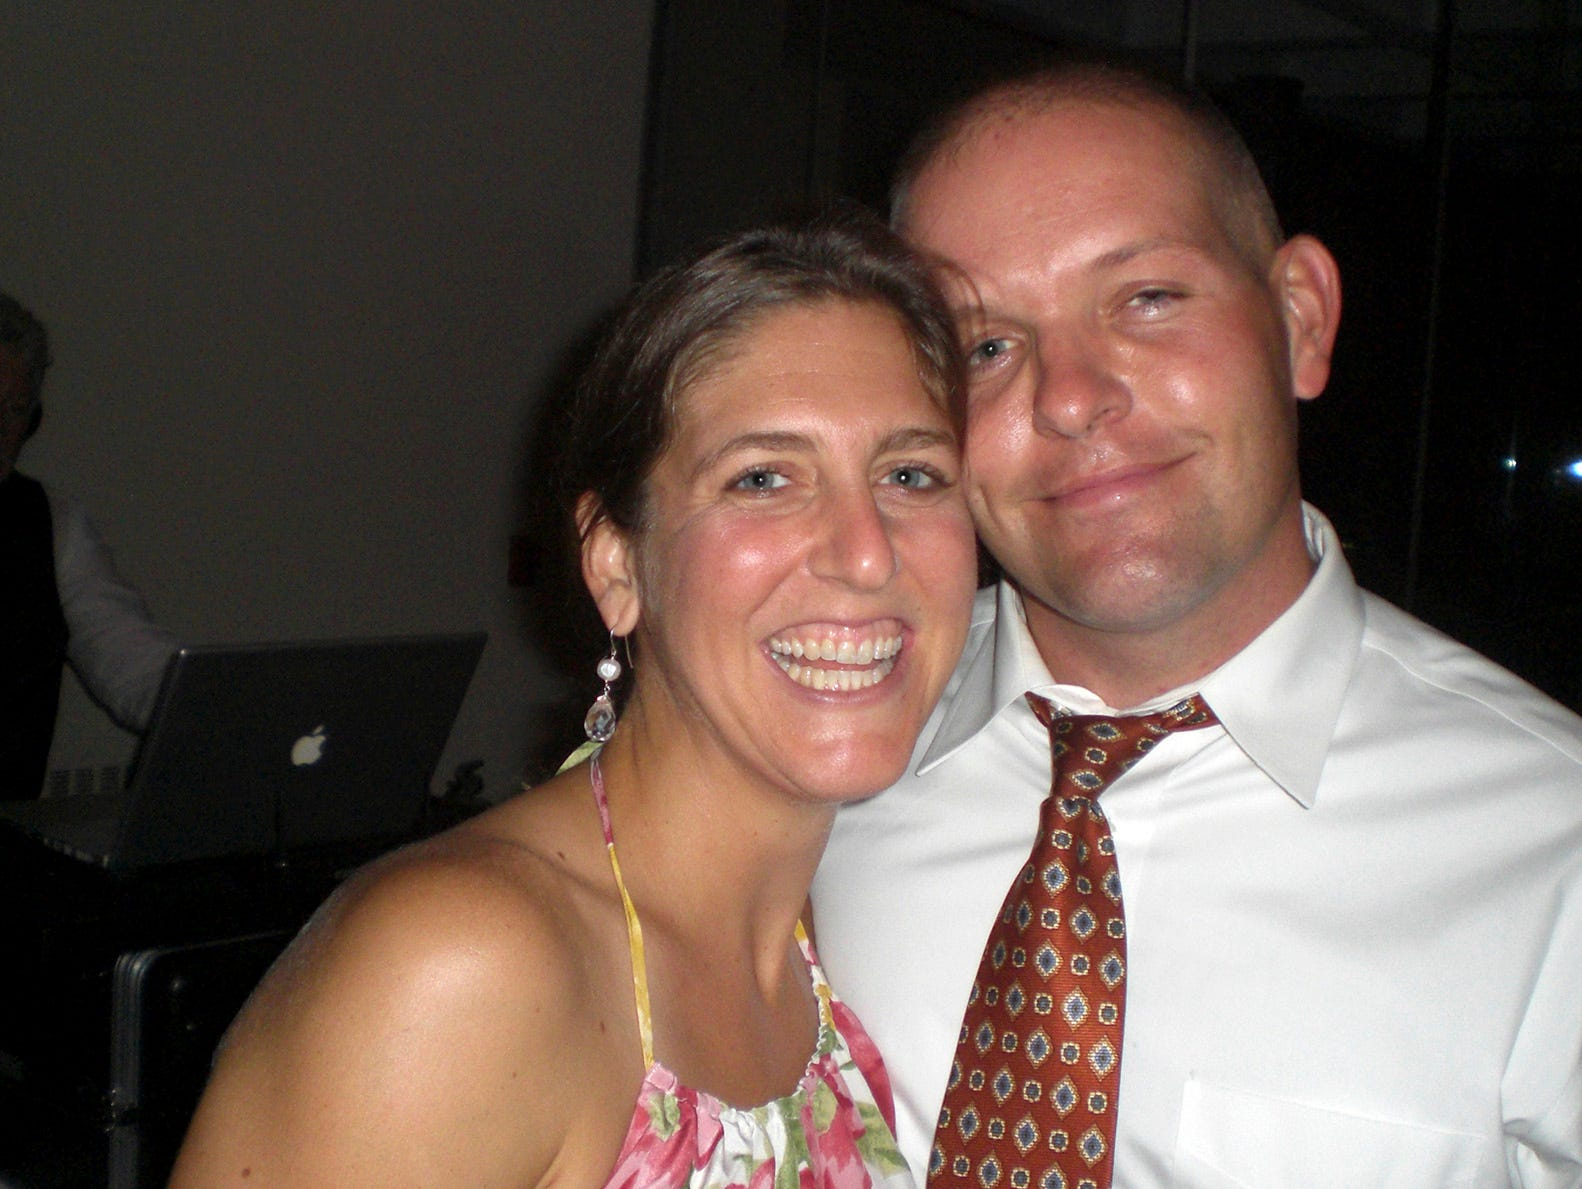 Undated photograph provided by Princeton University, shows Lorin Maurer with her boyfriend, Butler University assistant basketball coach Kevin Kuwik.  Maurer, the Athletics Friends Manager for the Princeton University Department of Athletics and Office of Development, was killed Thursday, Feb.12, 2009, in the crash of a commuter plane.  Continental Connection Flight 3407, bound from Newark, N.J., went down  about six miles short of the Buffalo airport, plunging nose-first through the roof of a house in suburban Clarence Center, N.Y.